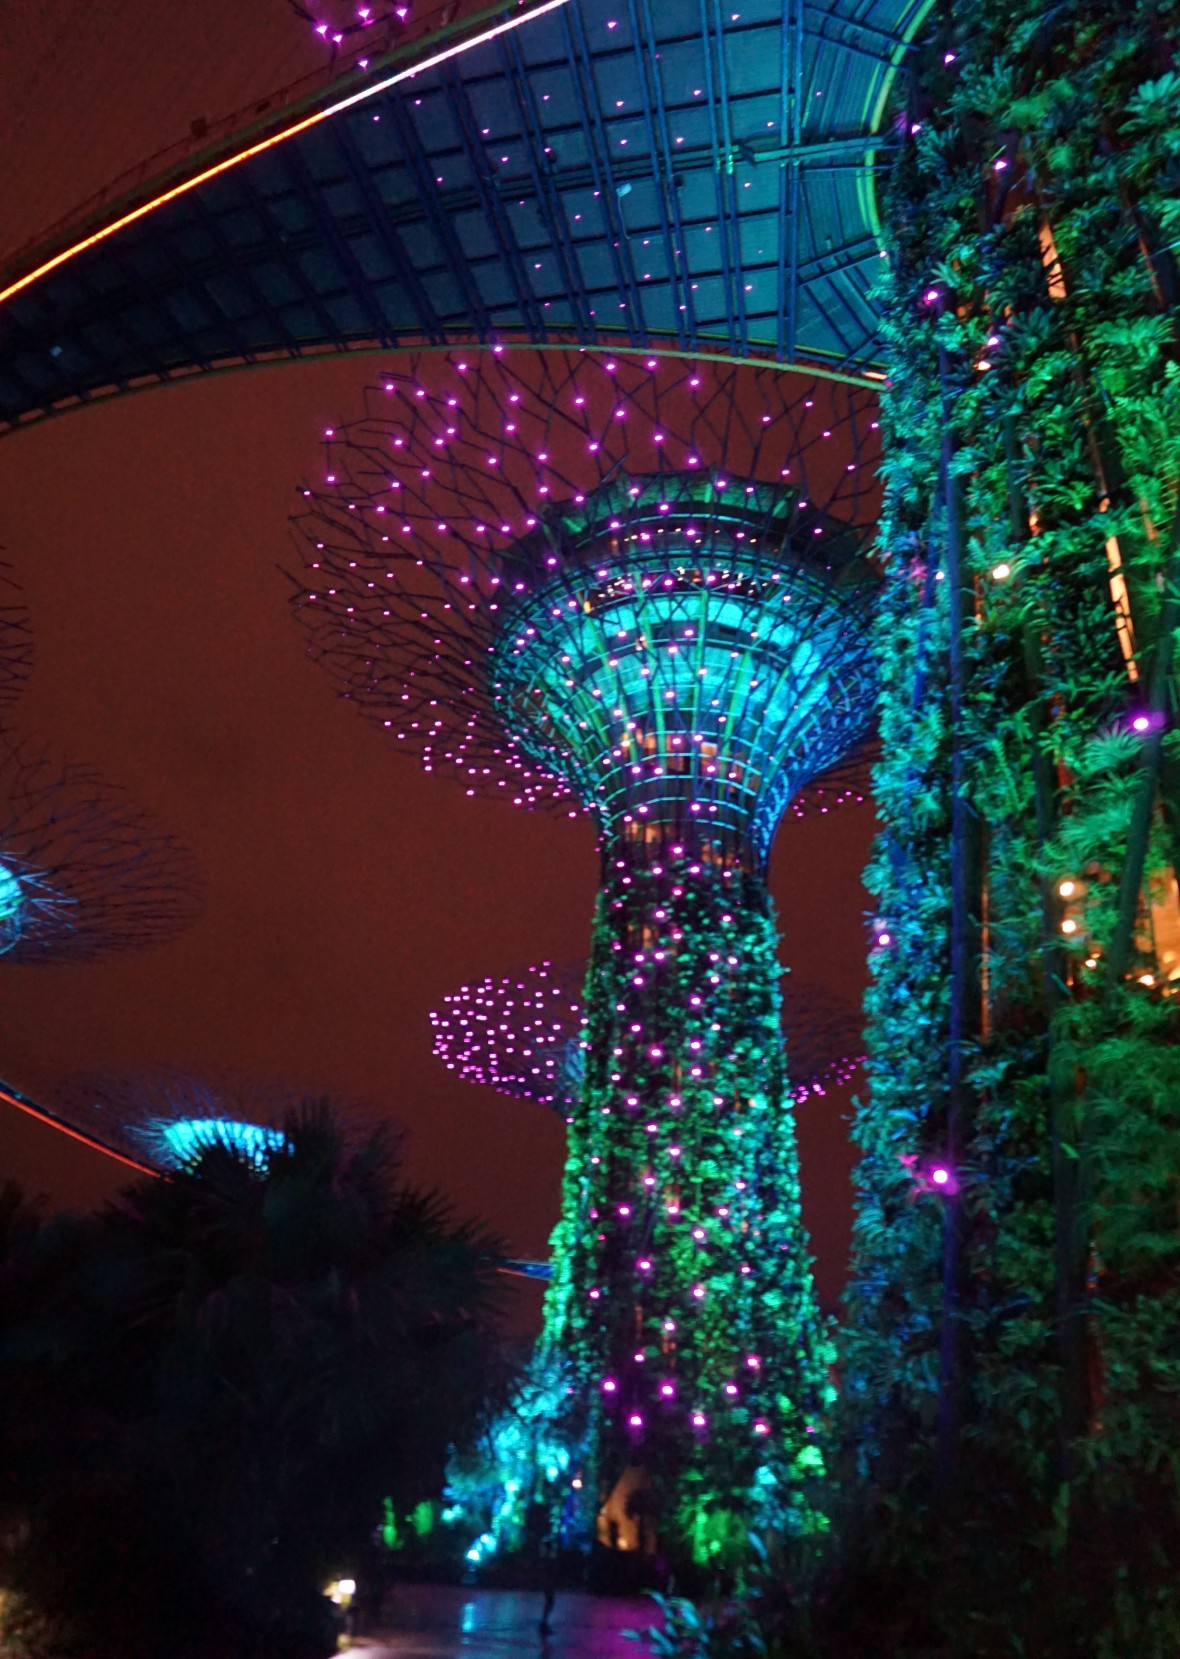 SIngapoour - Gardens by the bay night (4)